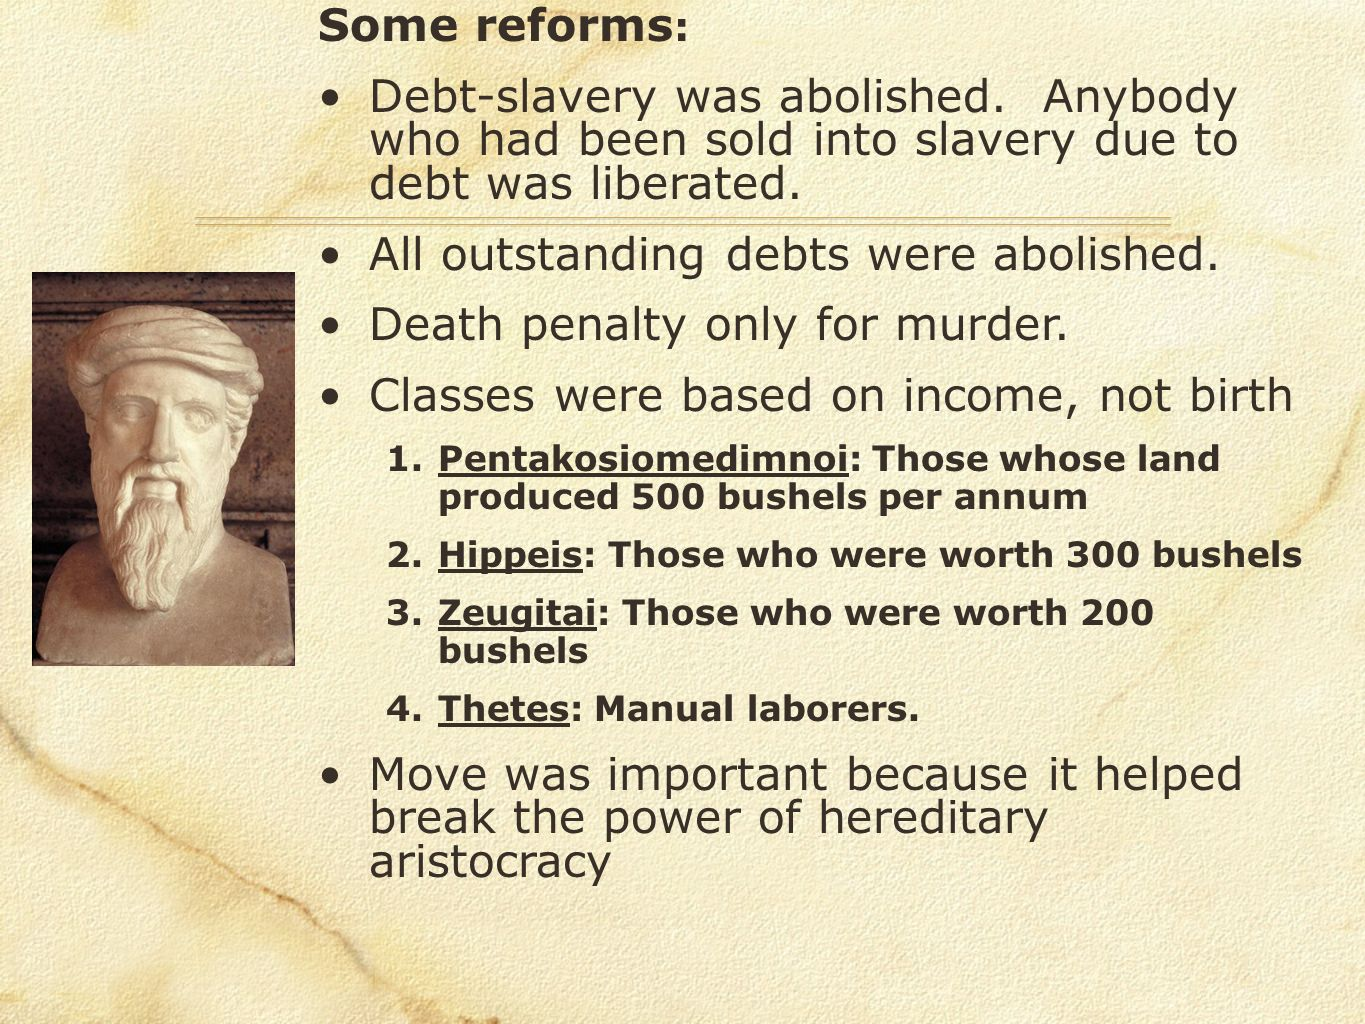 All outstanding debts were abolished. Death penalty only for murder.